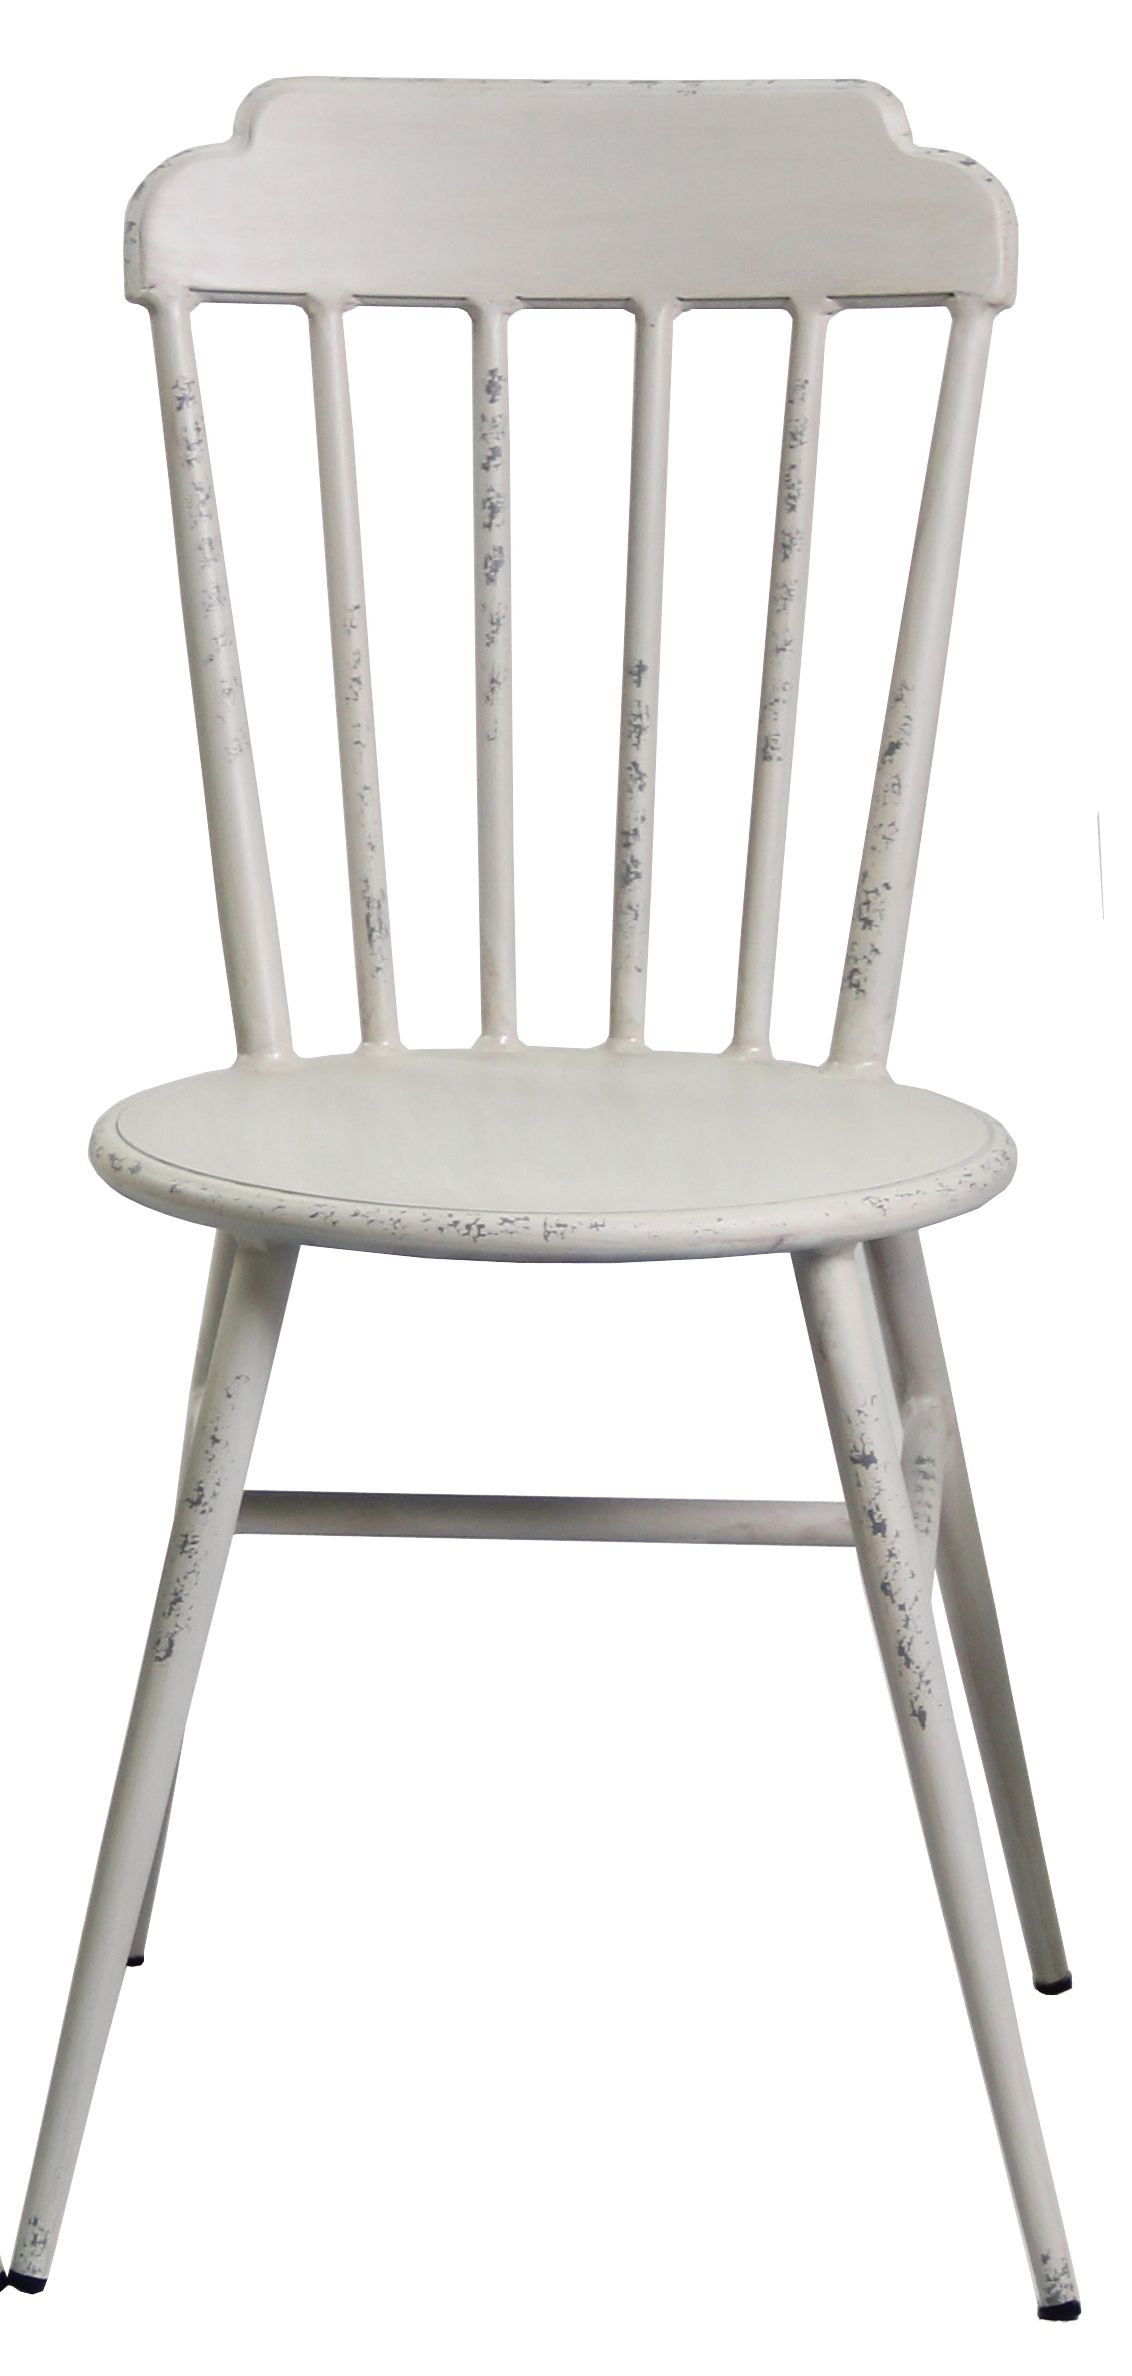 Aluminium Windsor Dinning Chair Retro White Set of 2